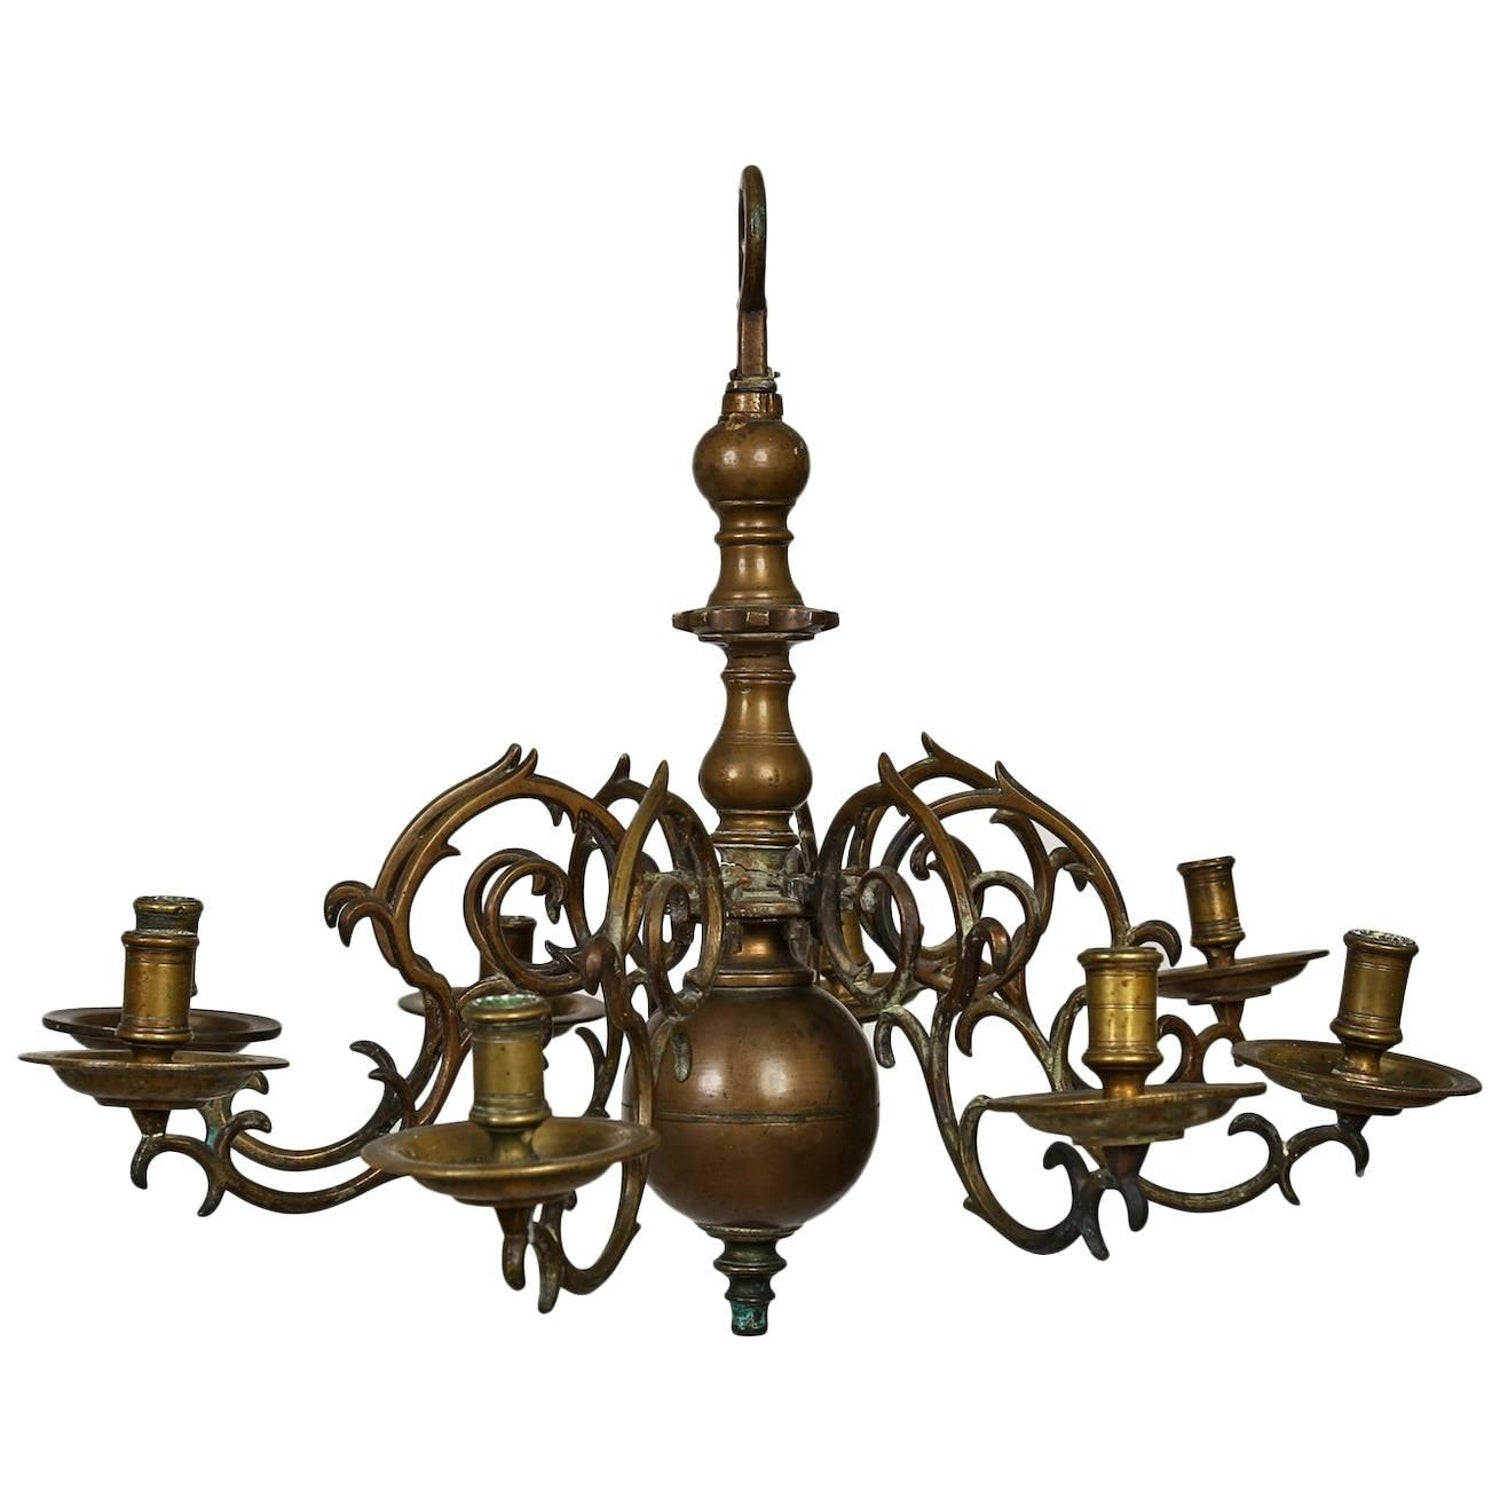 Dutch Bronze Twelve Arm Candle Holder Chandelier 18th Century For